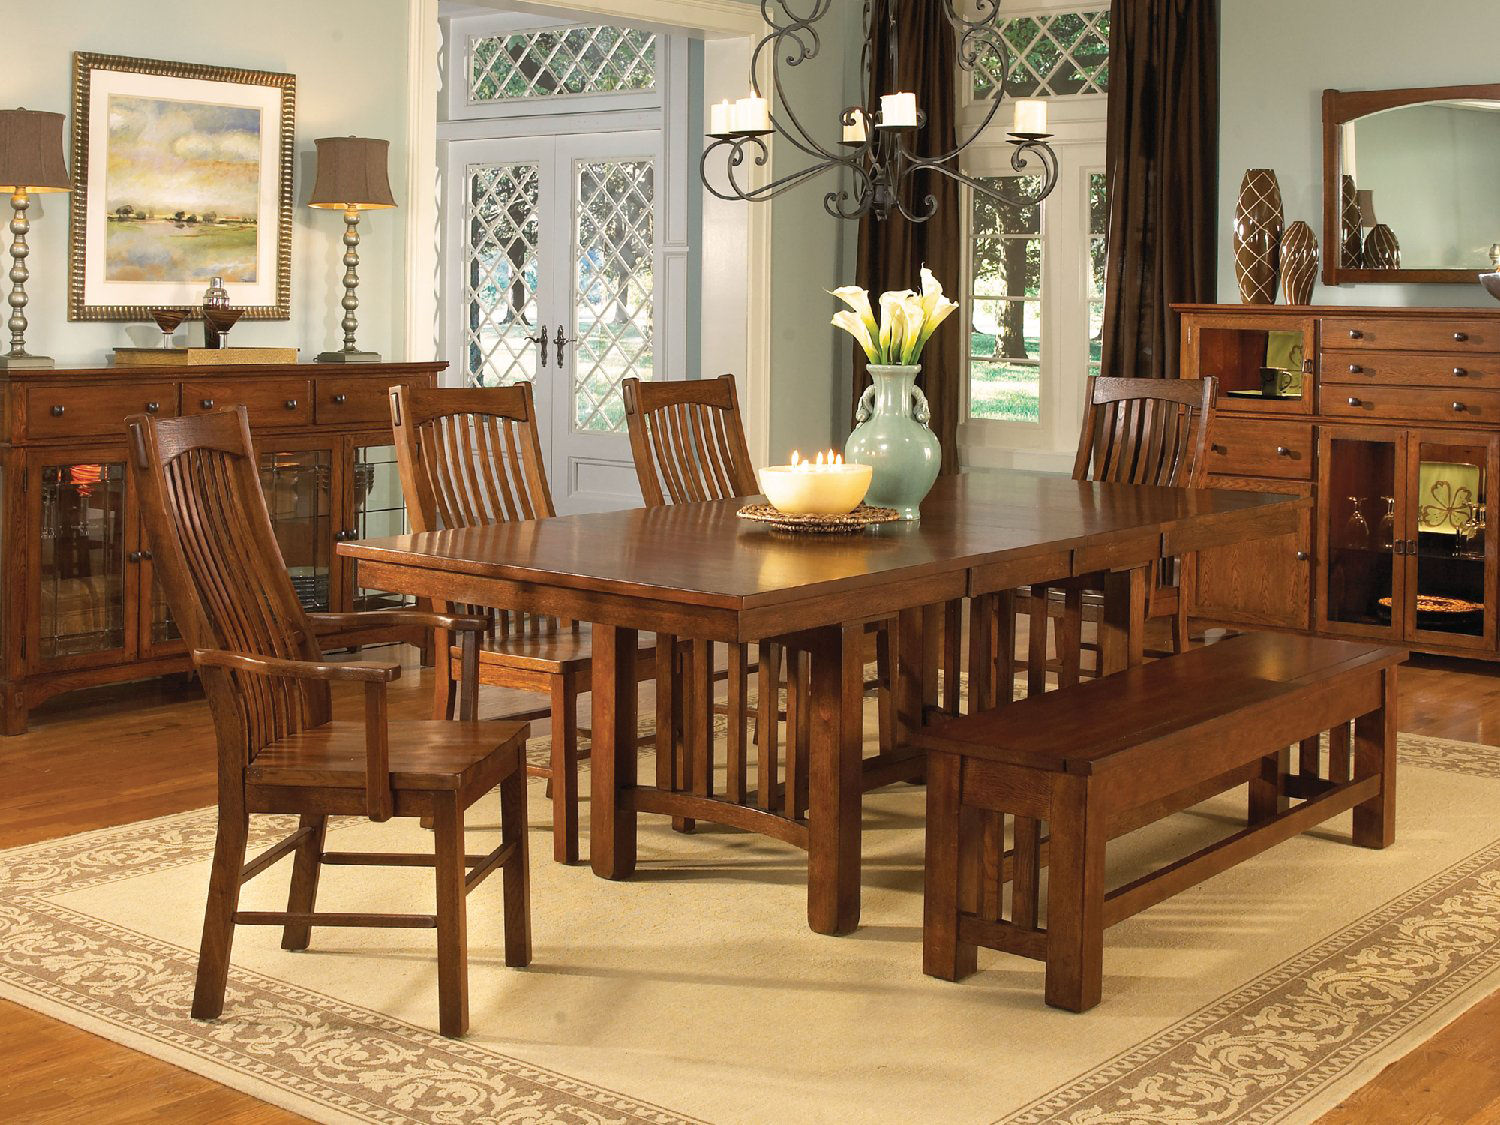 Mission American Kitchen Minneapolis Laurelhurst Solid Oak Mission Dining Table And 4 Side Chairs Hom